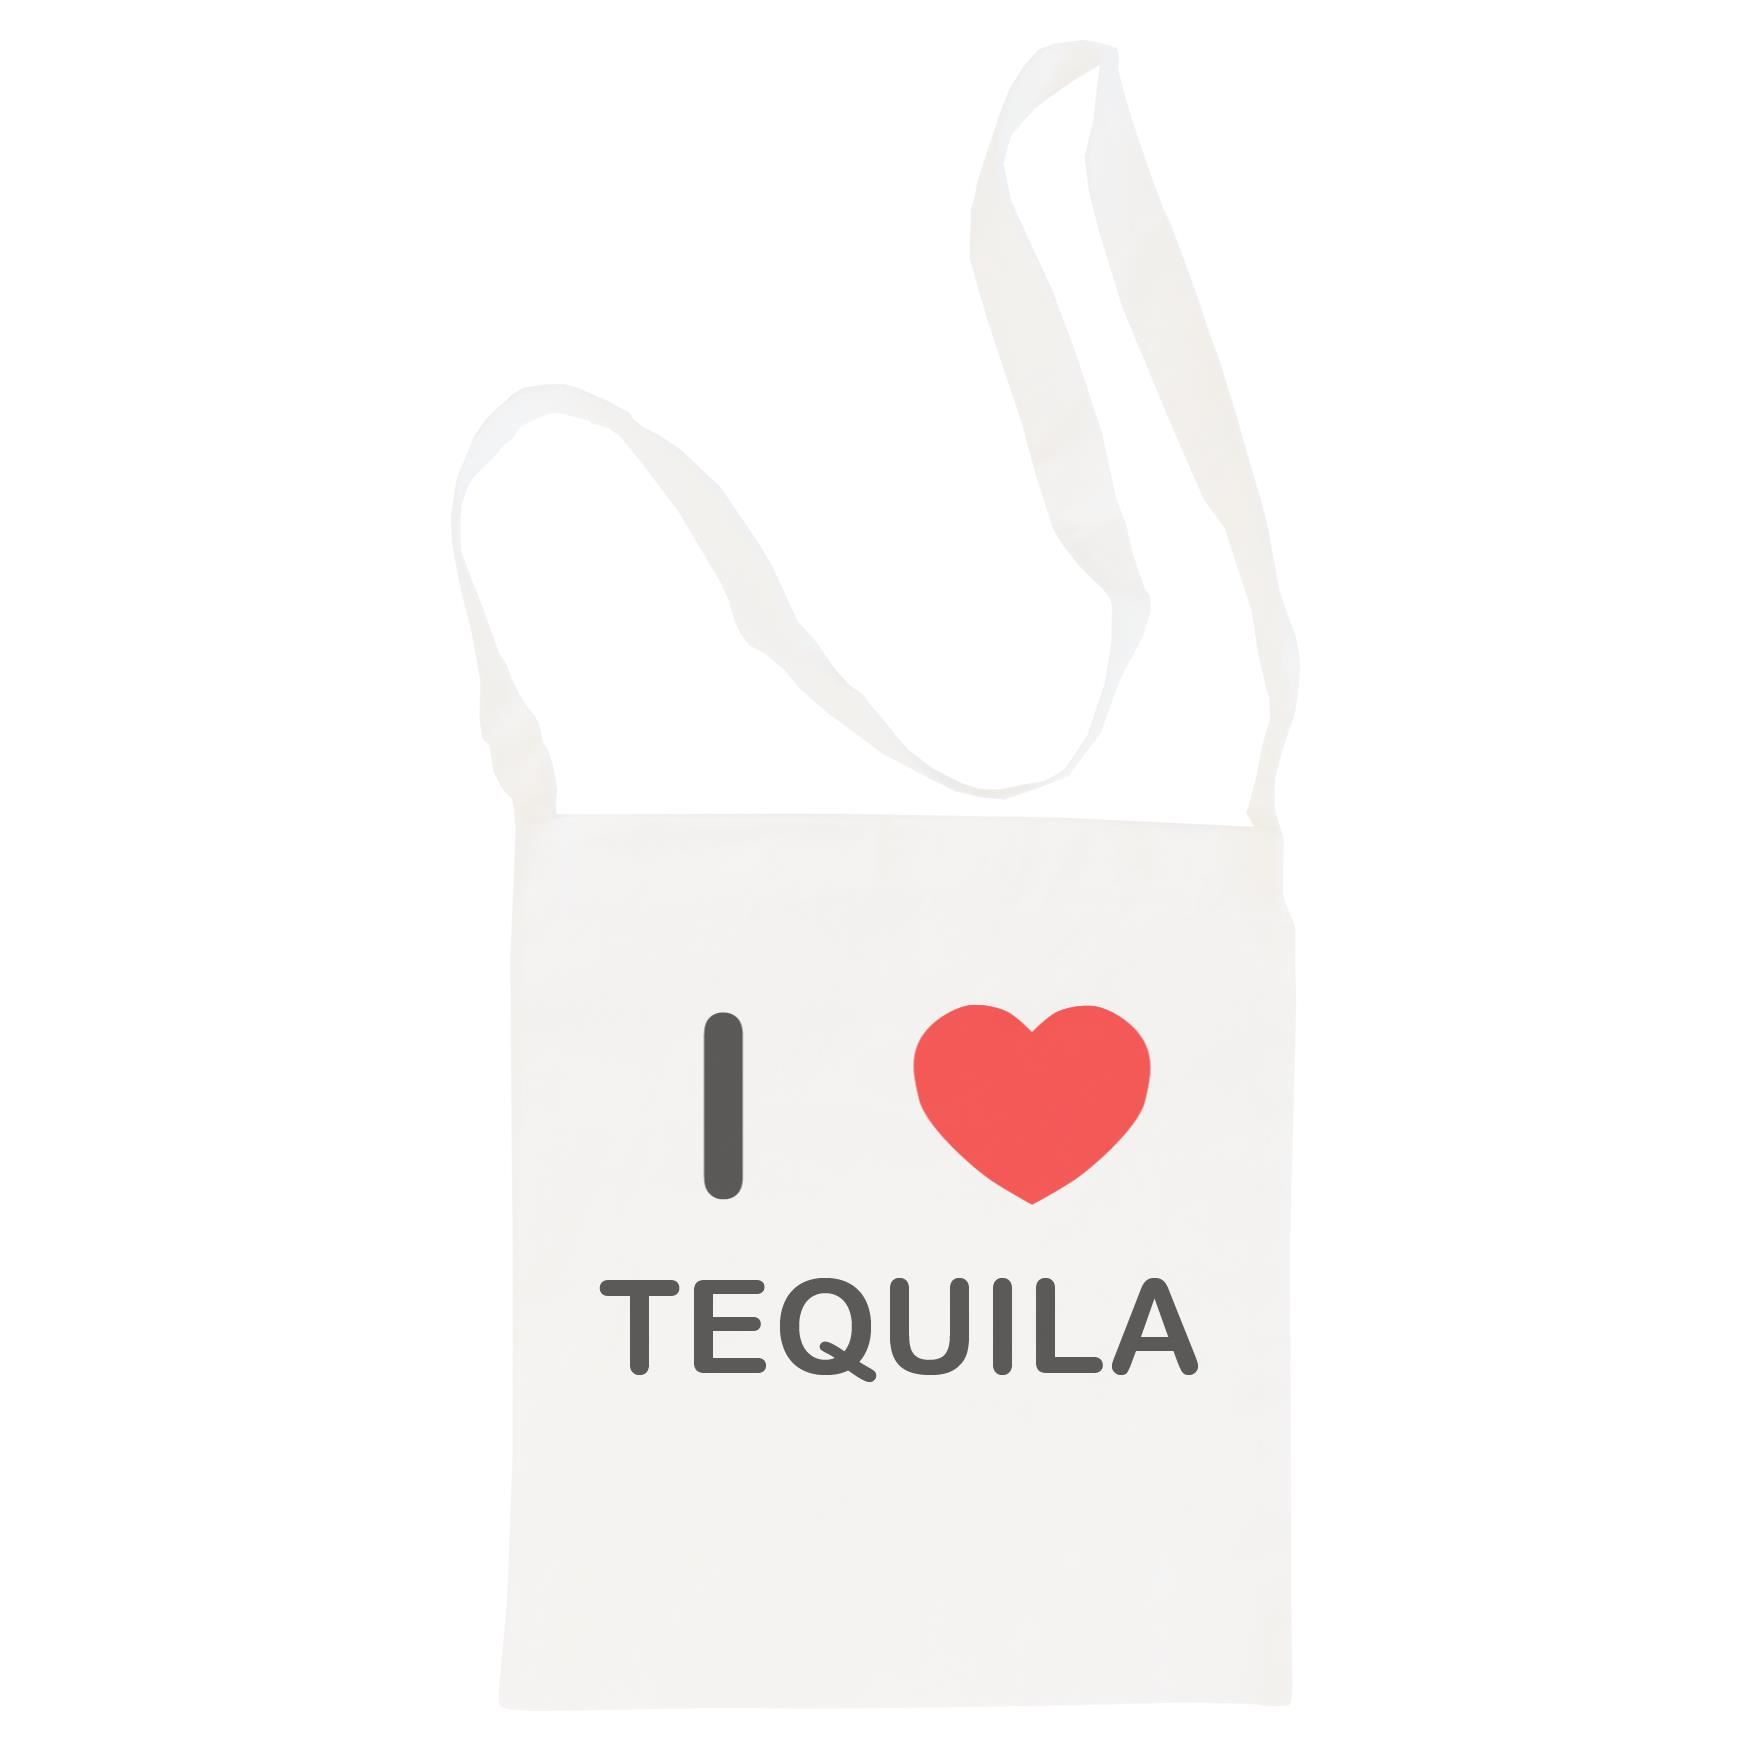 I Love Tequila - Cotton Bag | Size choice Tote, Shopper or Sling